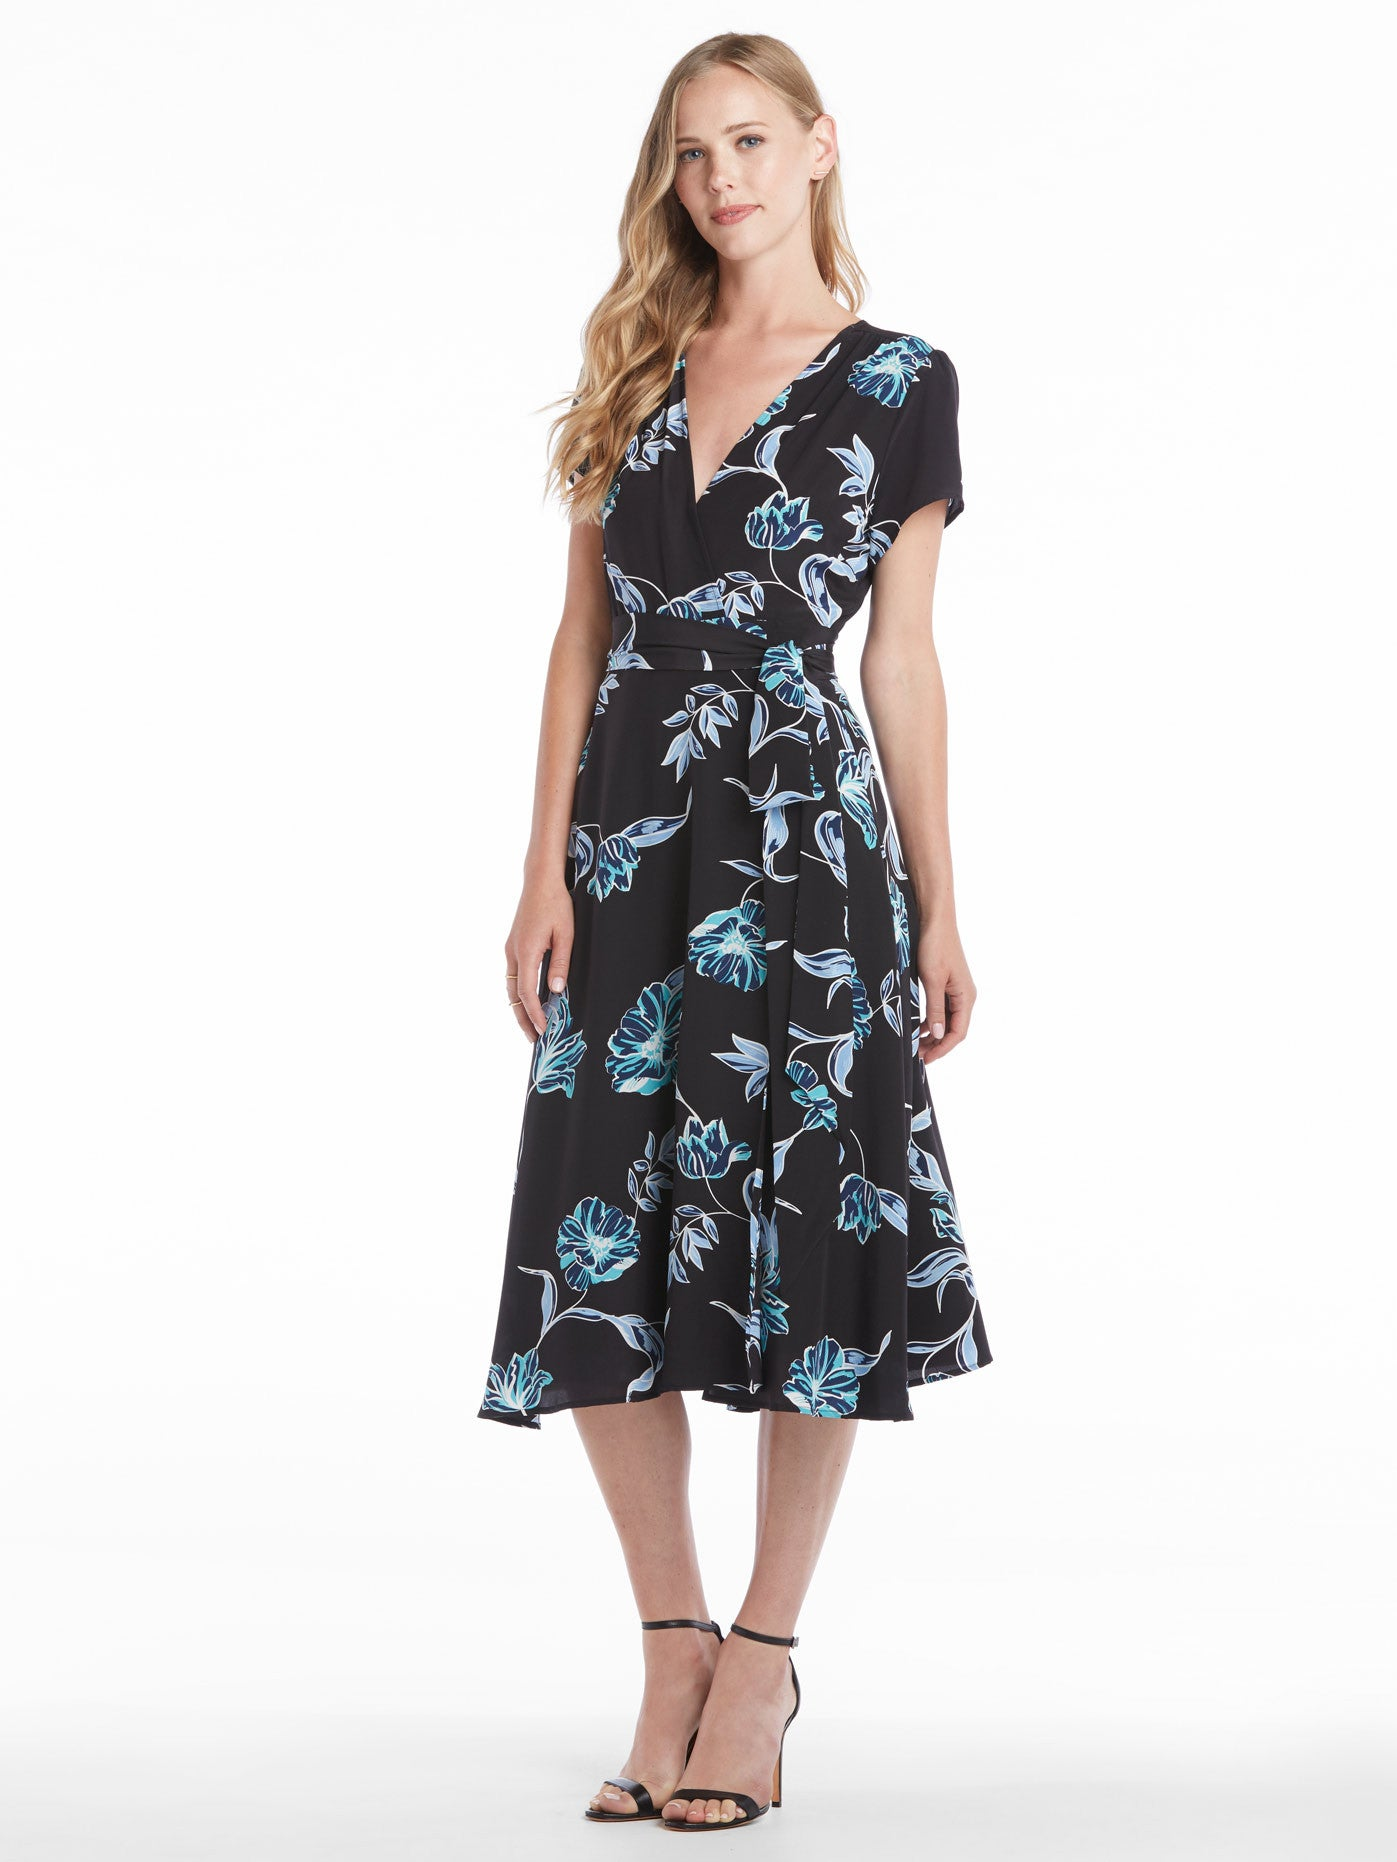 Yumi Kim Spin Me Around Dress - Hello Beautiful Black | TILDEN